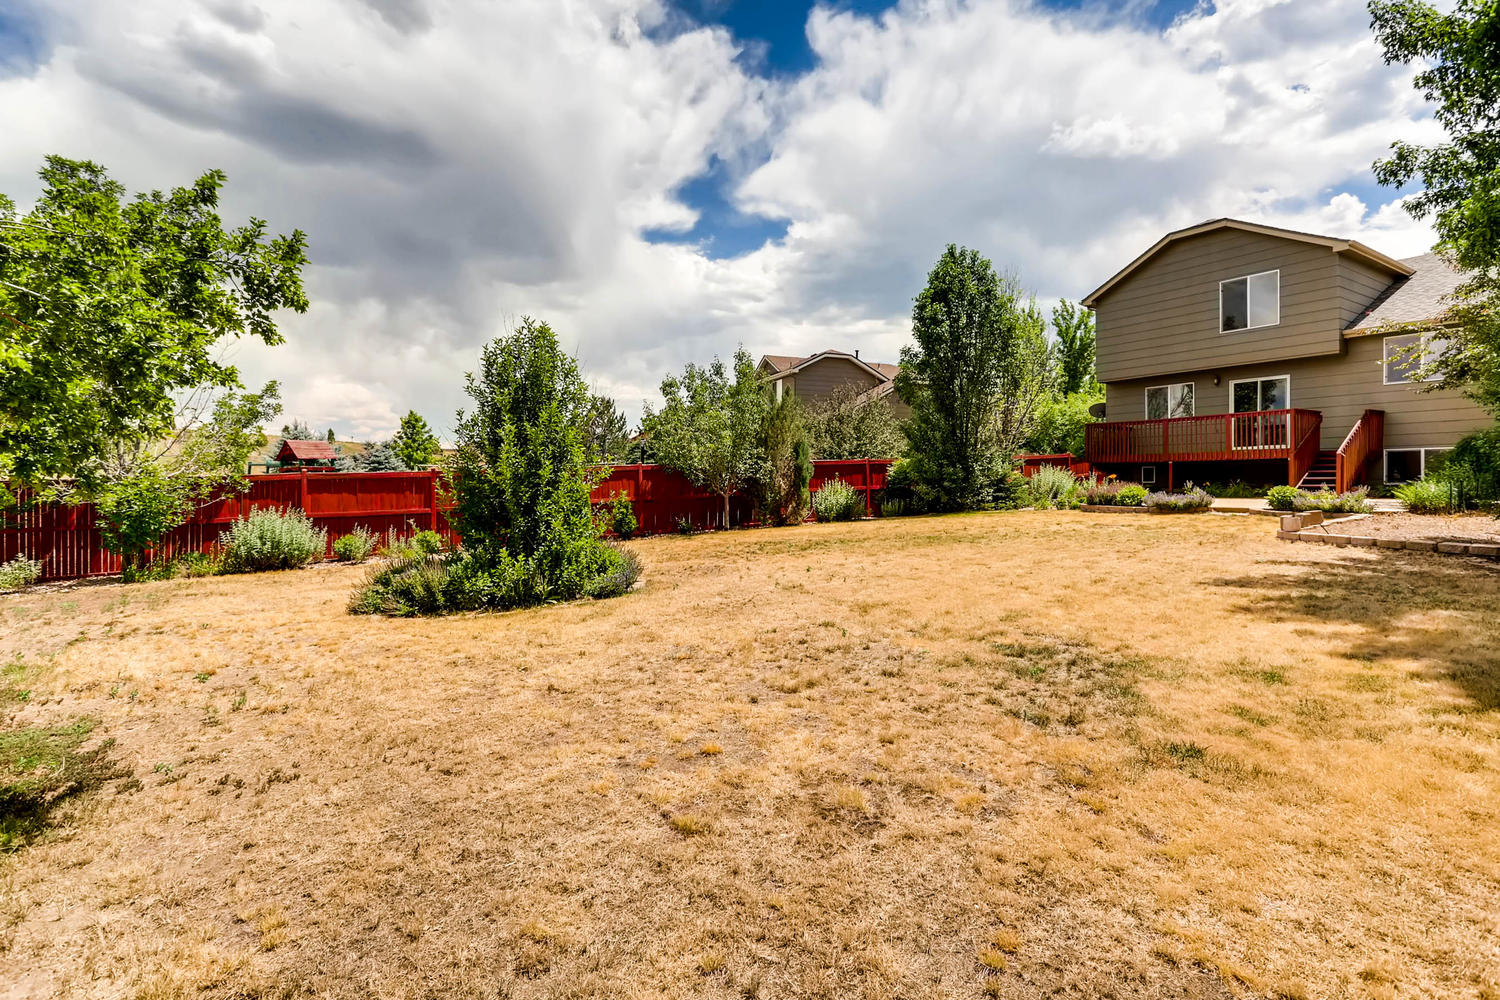 Photo of 3308 Blue Grass Cir, Castle Rock, CO, 80109